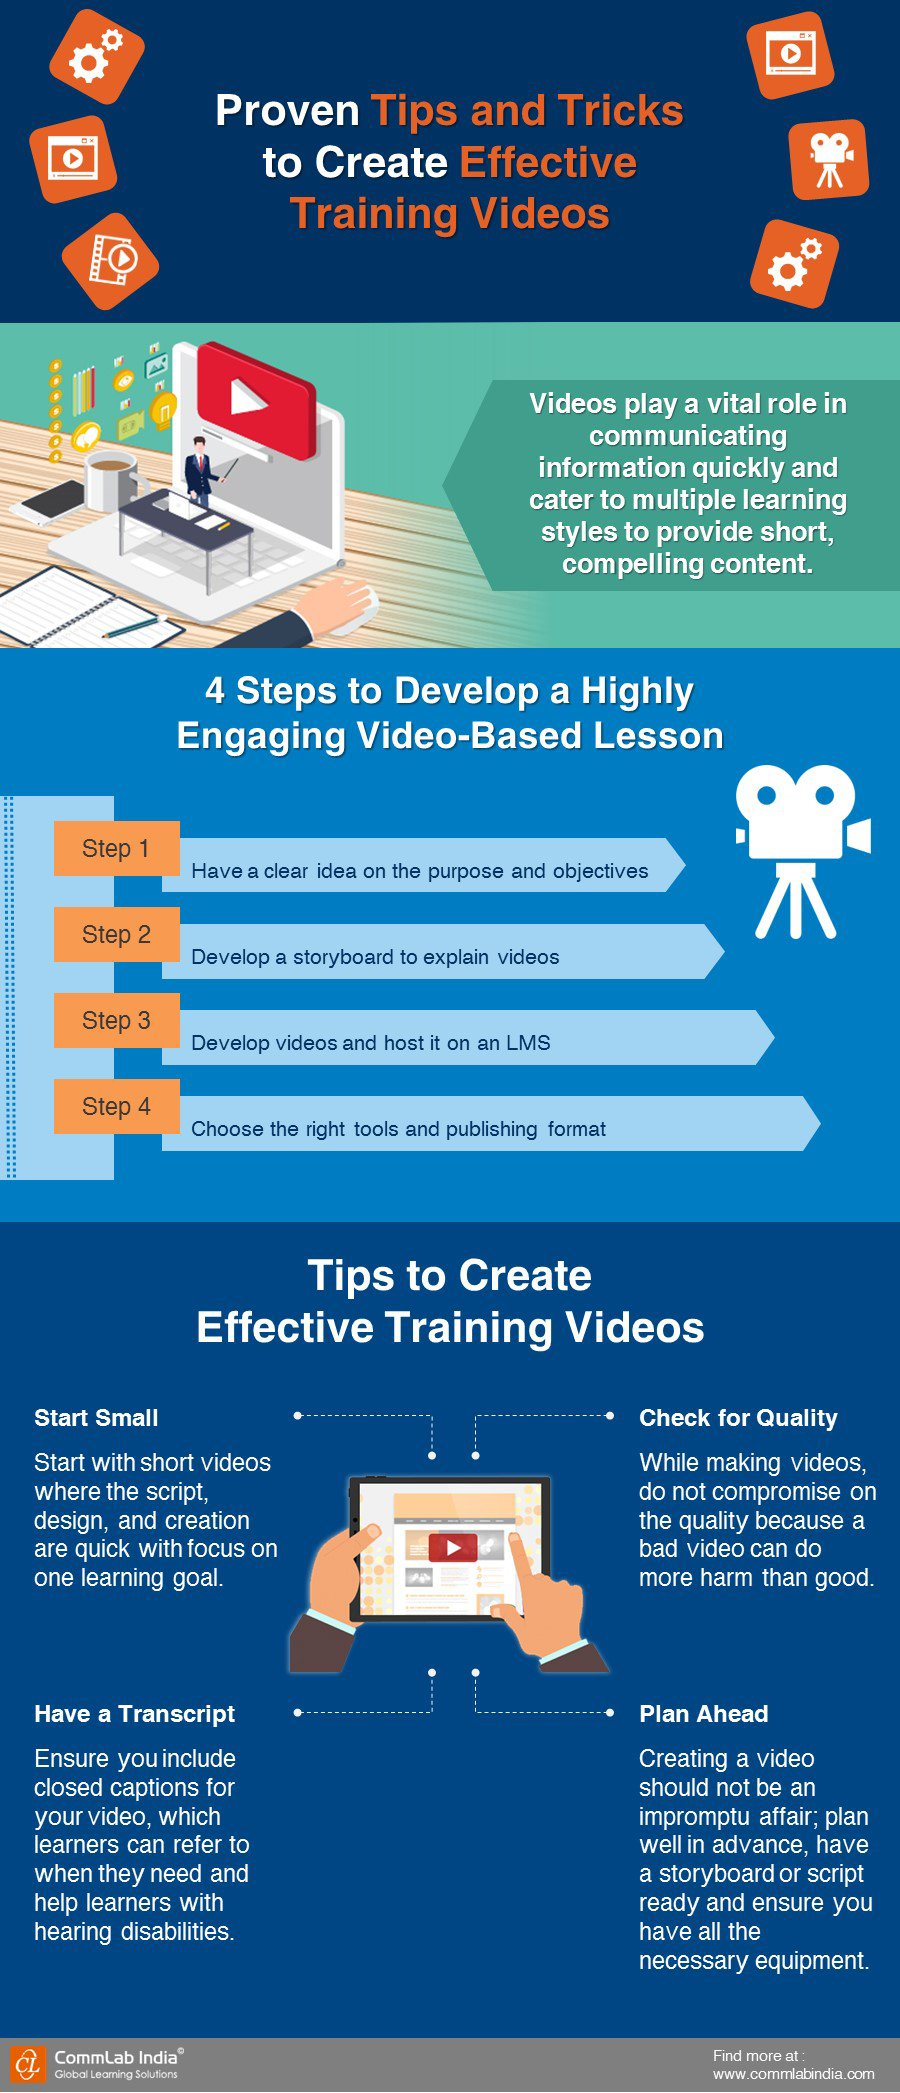 Proven Tips and Tricks to Create Effective Training Videos